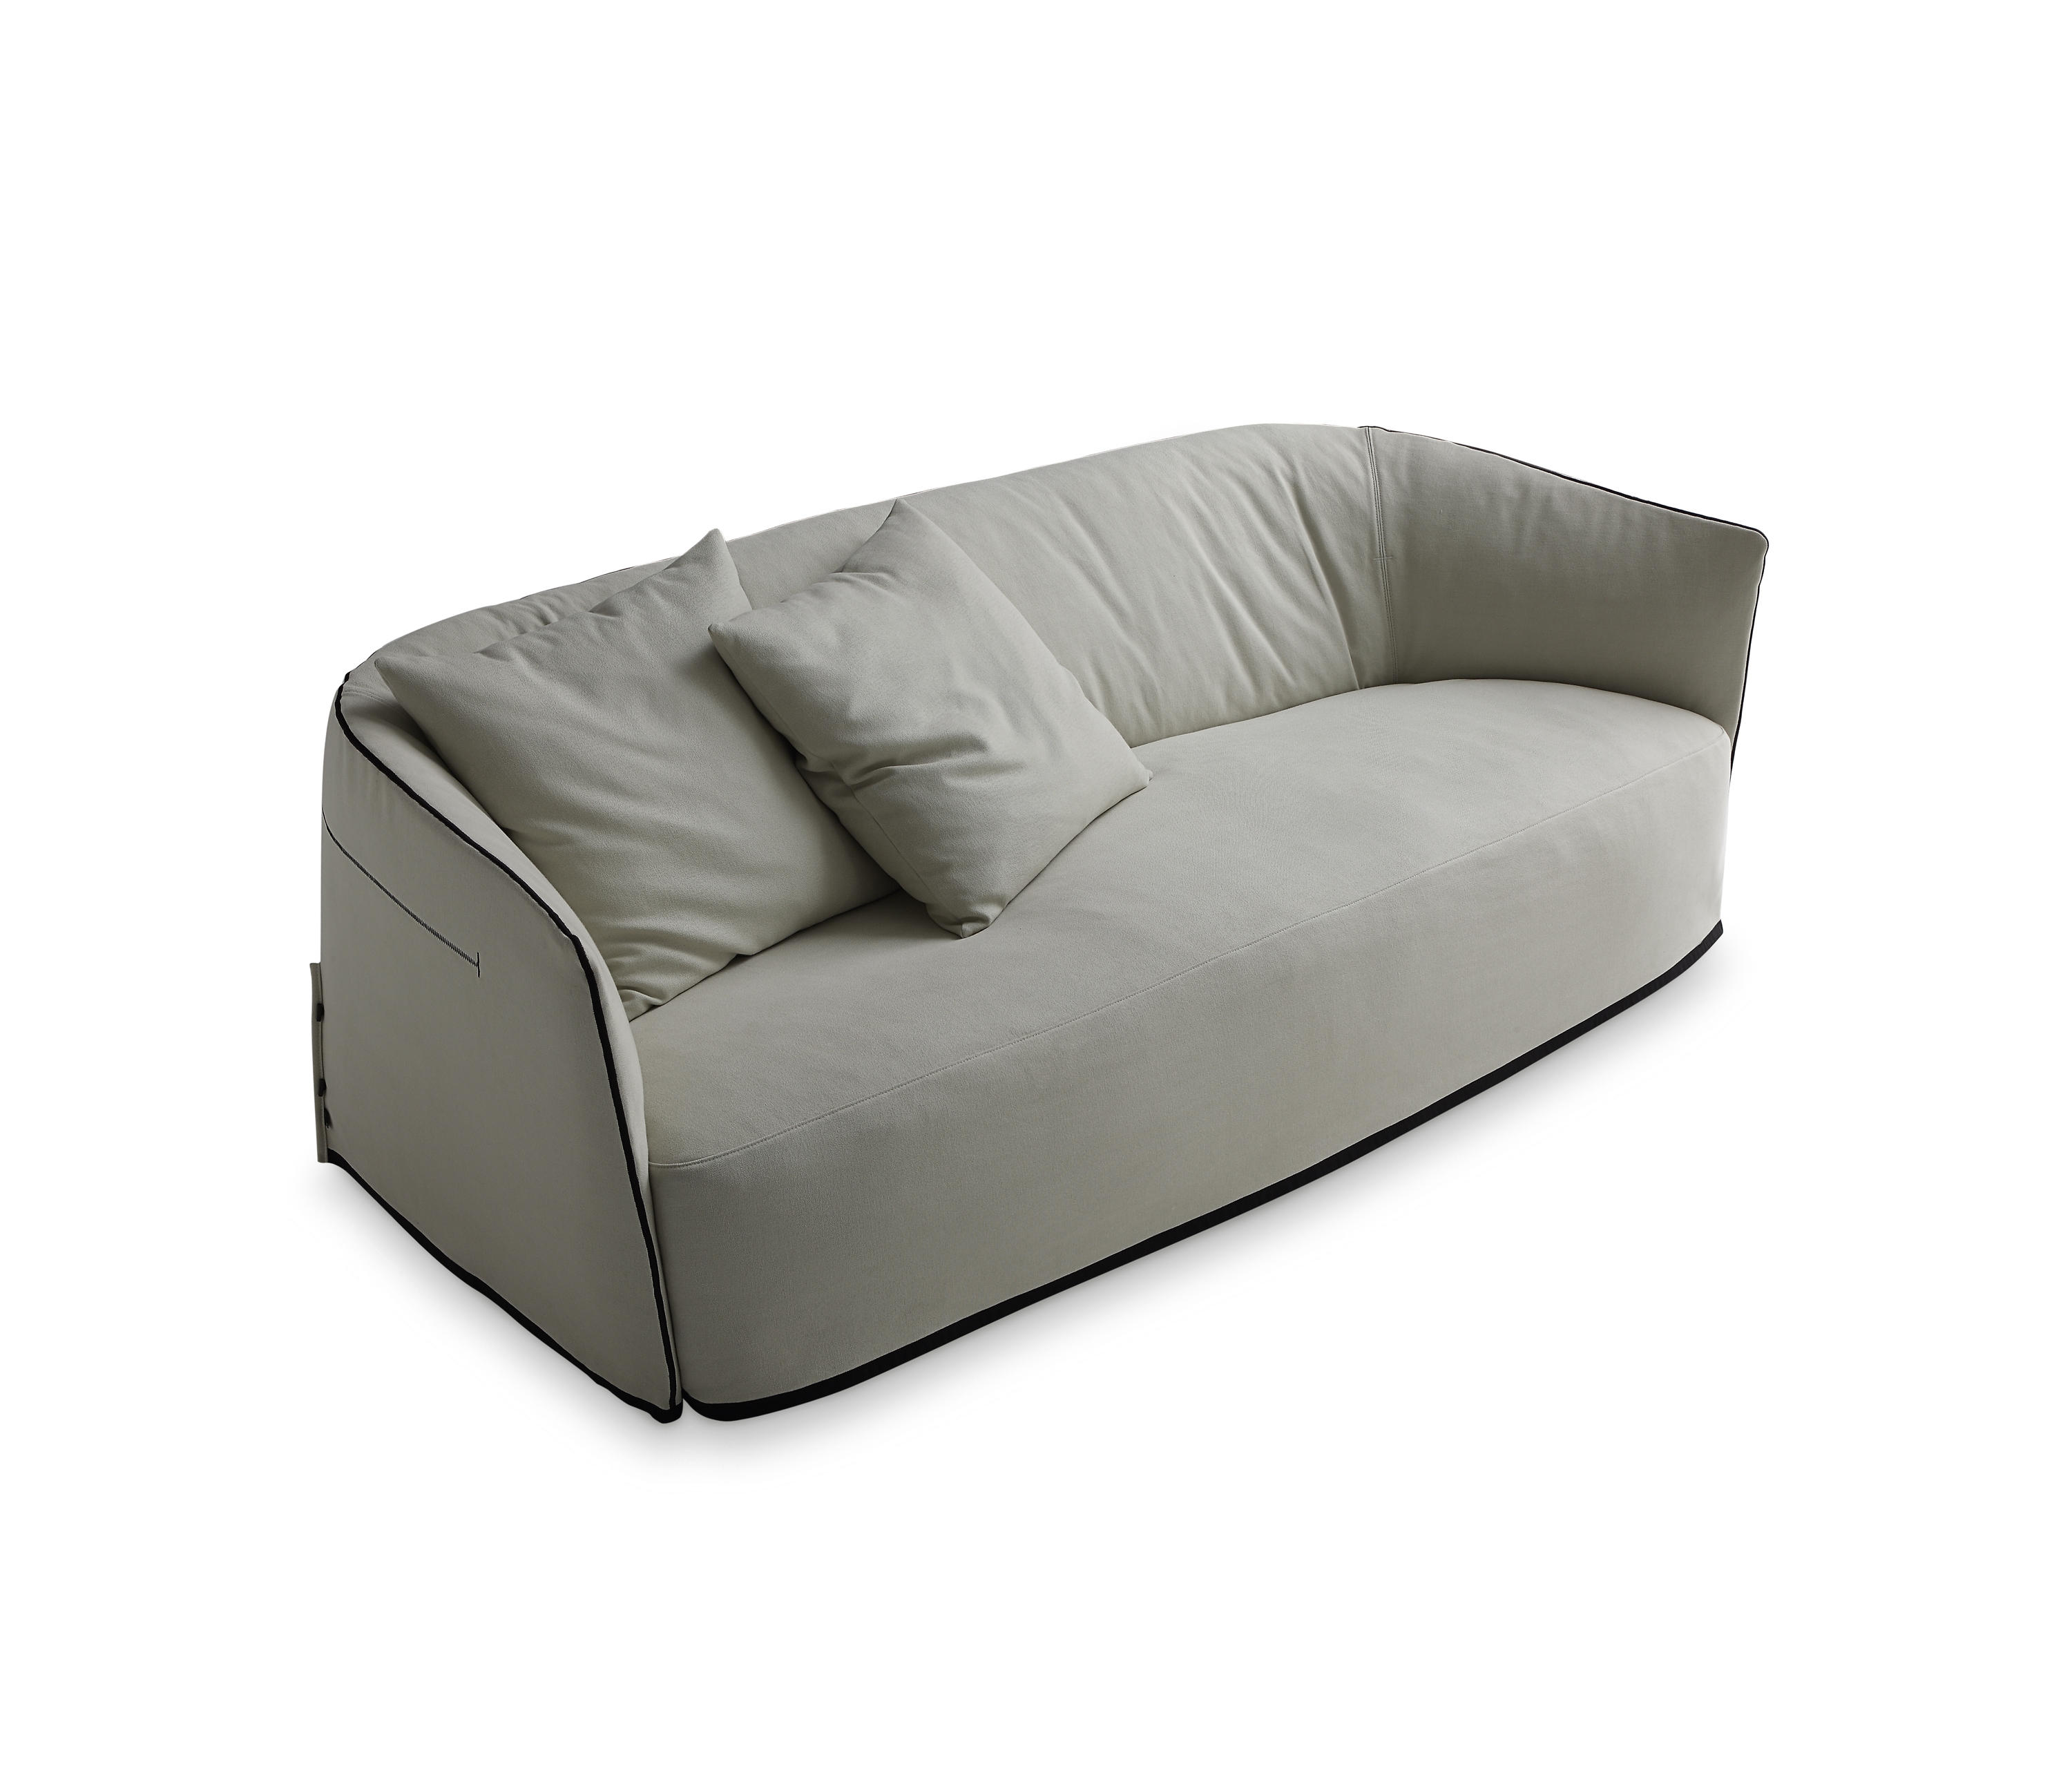 SANTA MONICA SOFA Sofas from Poliform